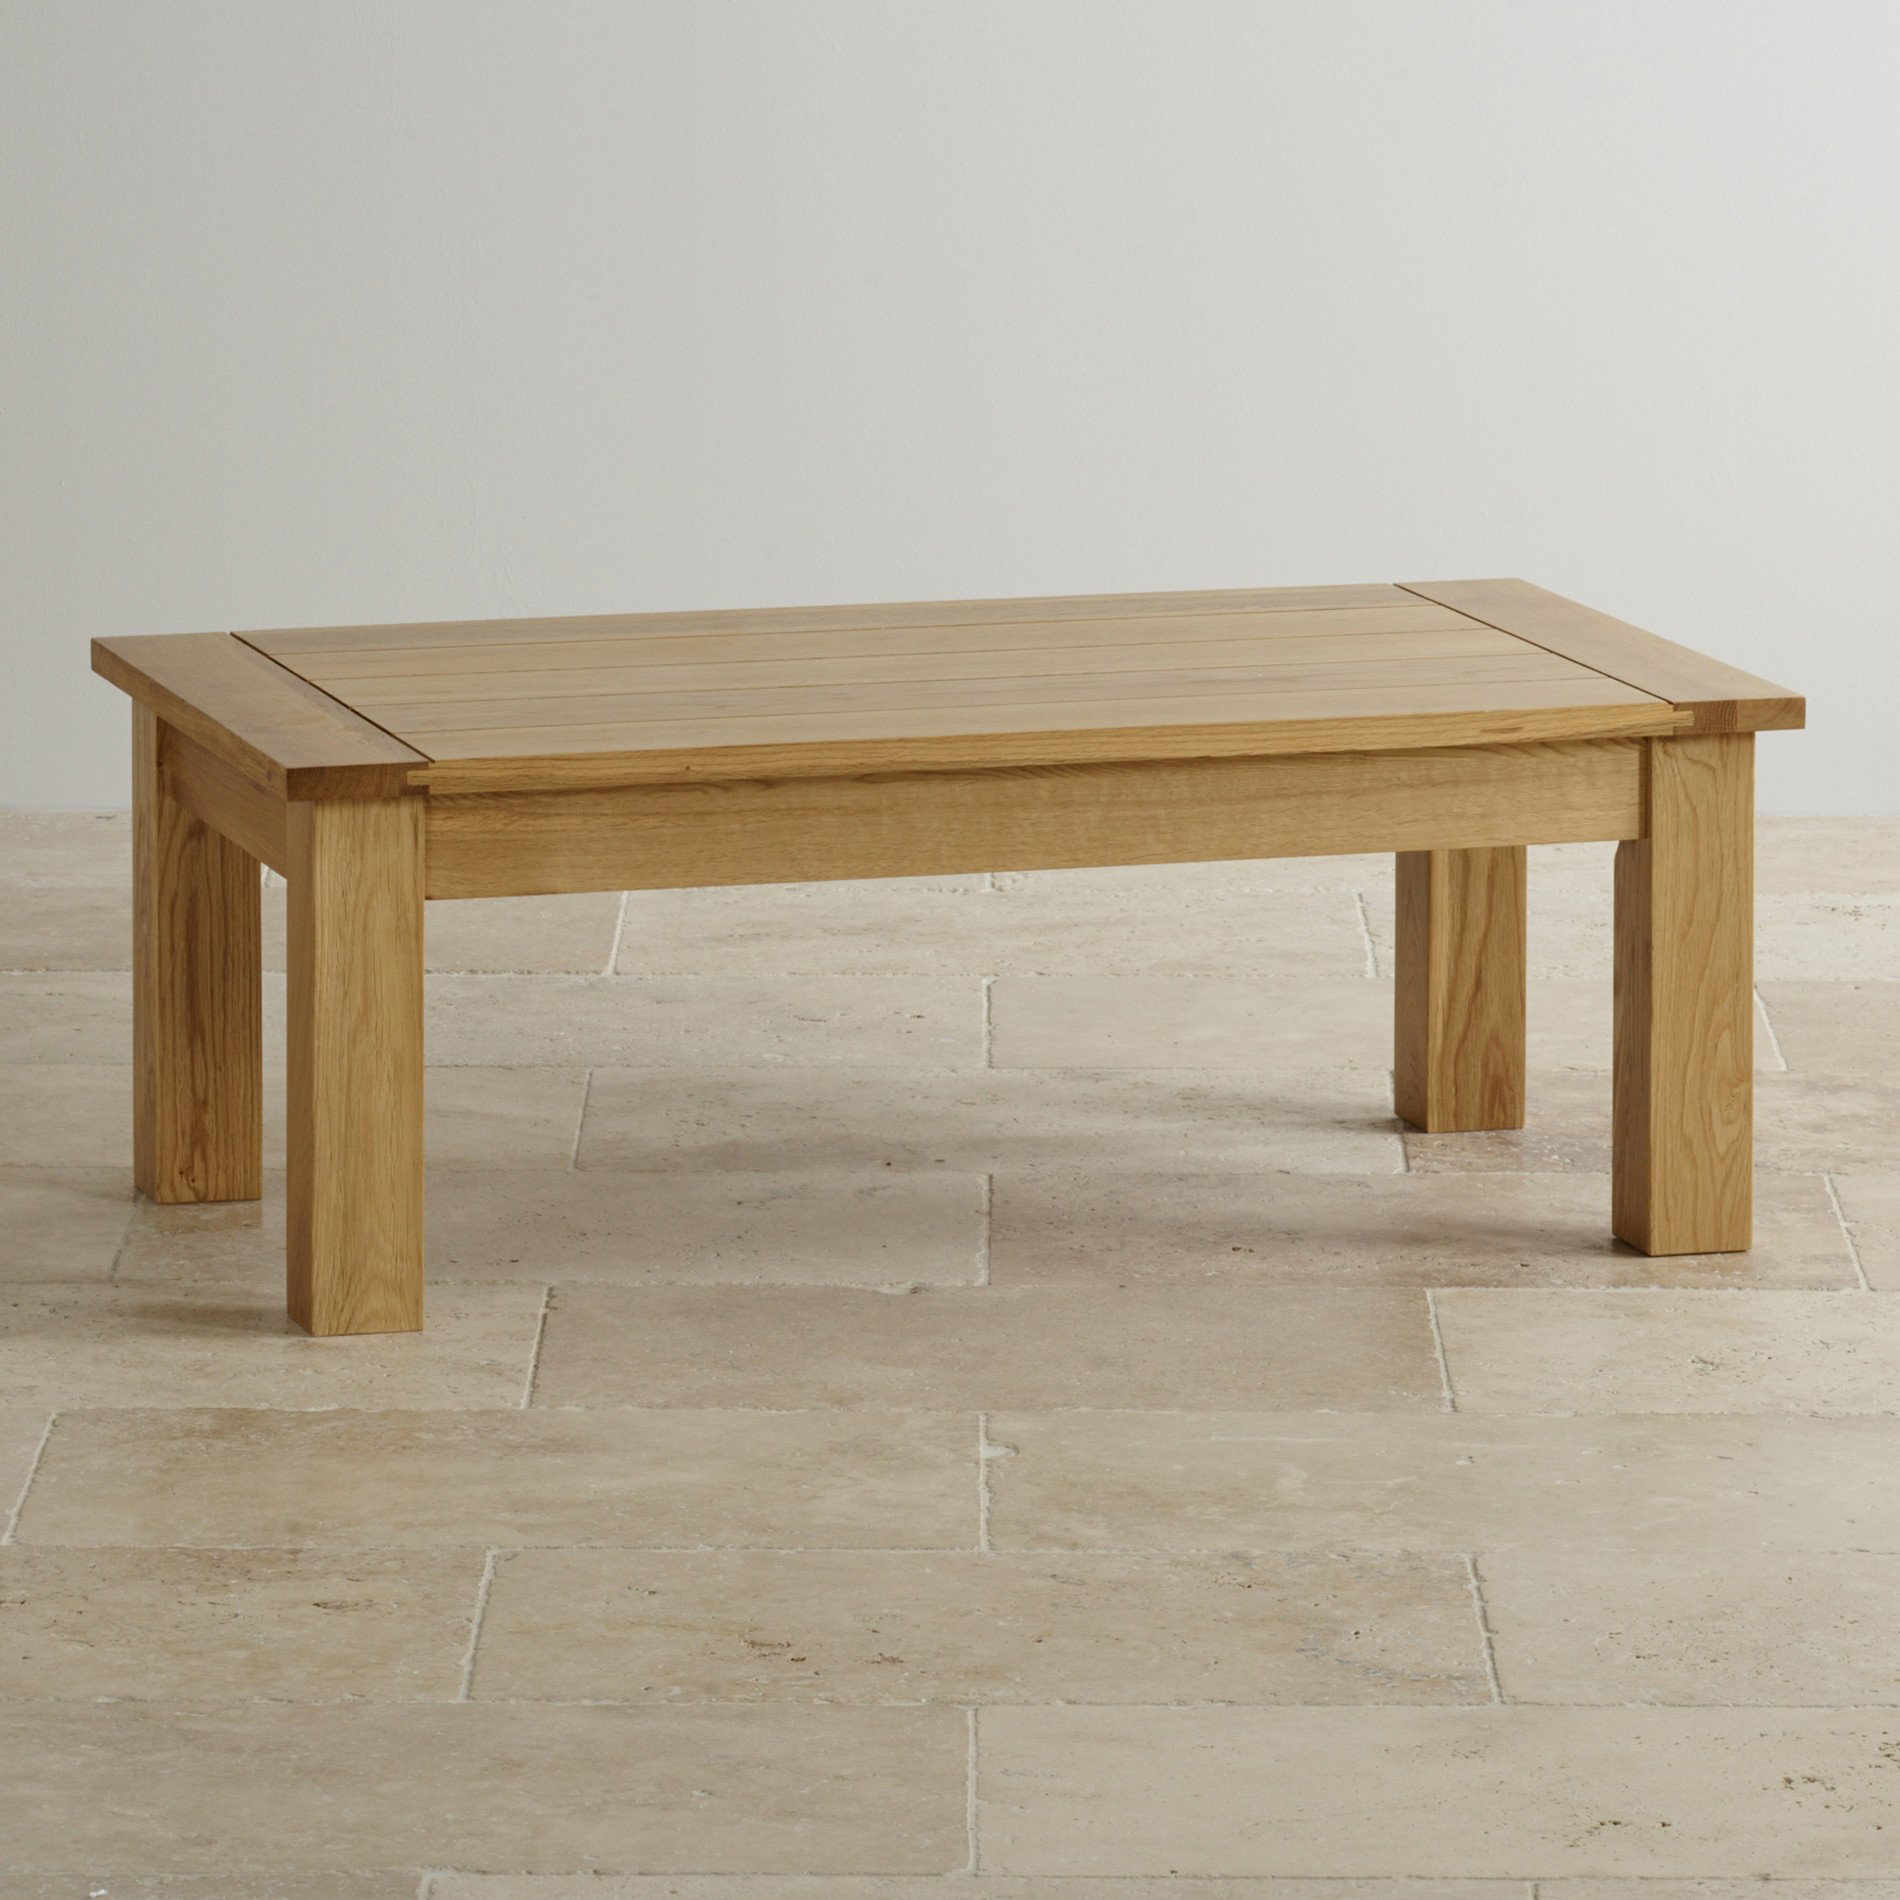 Black Oak Round Coffee Table: Contemporary Coffee Table In Solid Oak